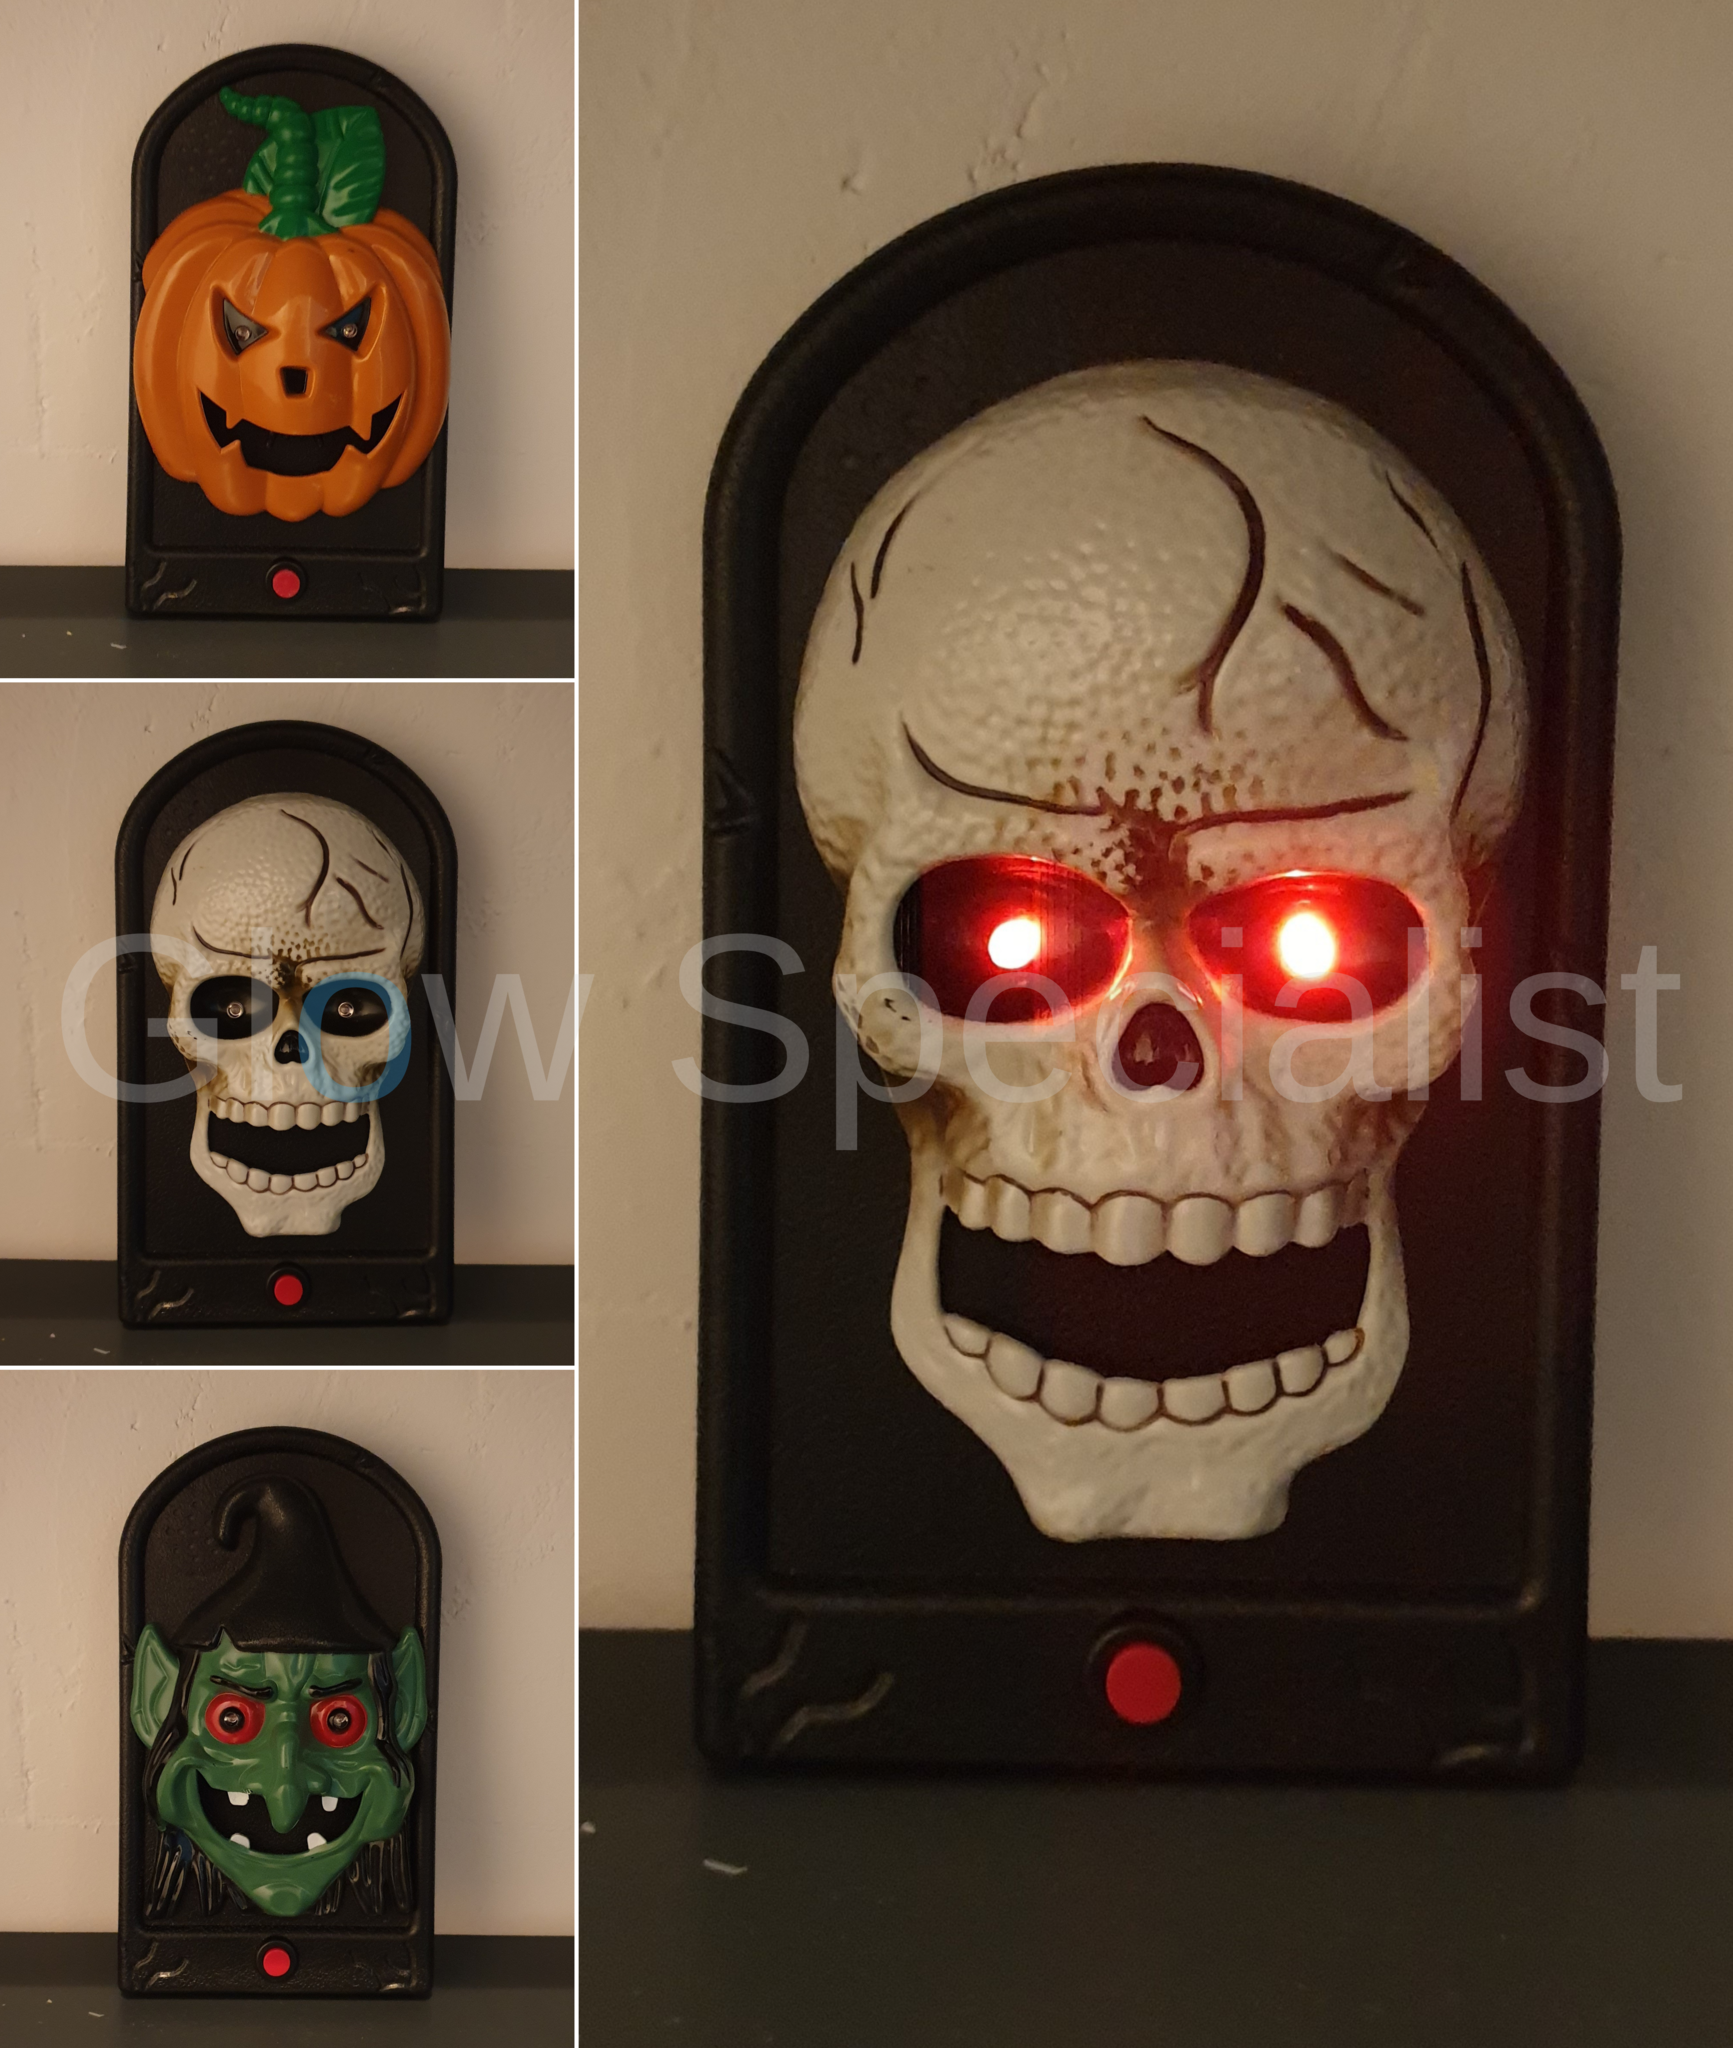 Halloween Skull Decorations.Halloween Skull Doorbell Touch Control Halloween Party Decorations Light Up Talking Doorbell Scary And Haunted Skull With Sounds Led Light Ornament 2 Pack Door Chimes Bells Tools Home Improvement Femsa Com